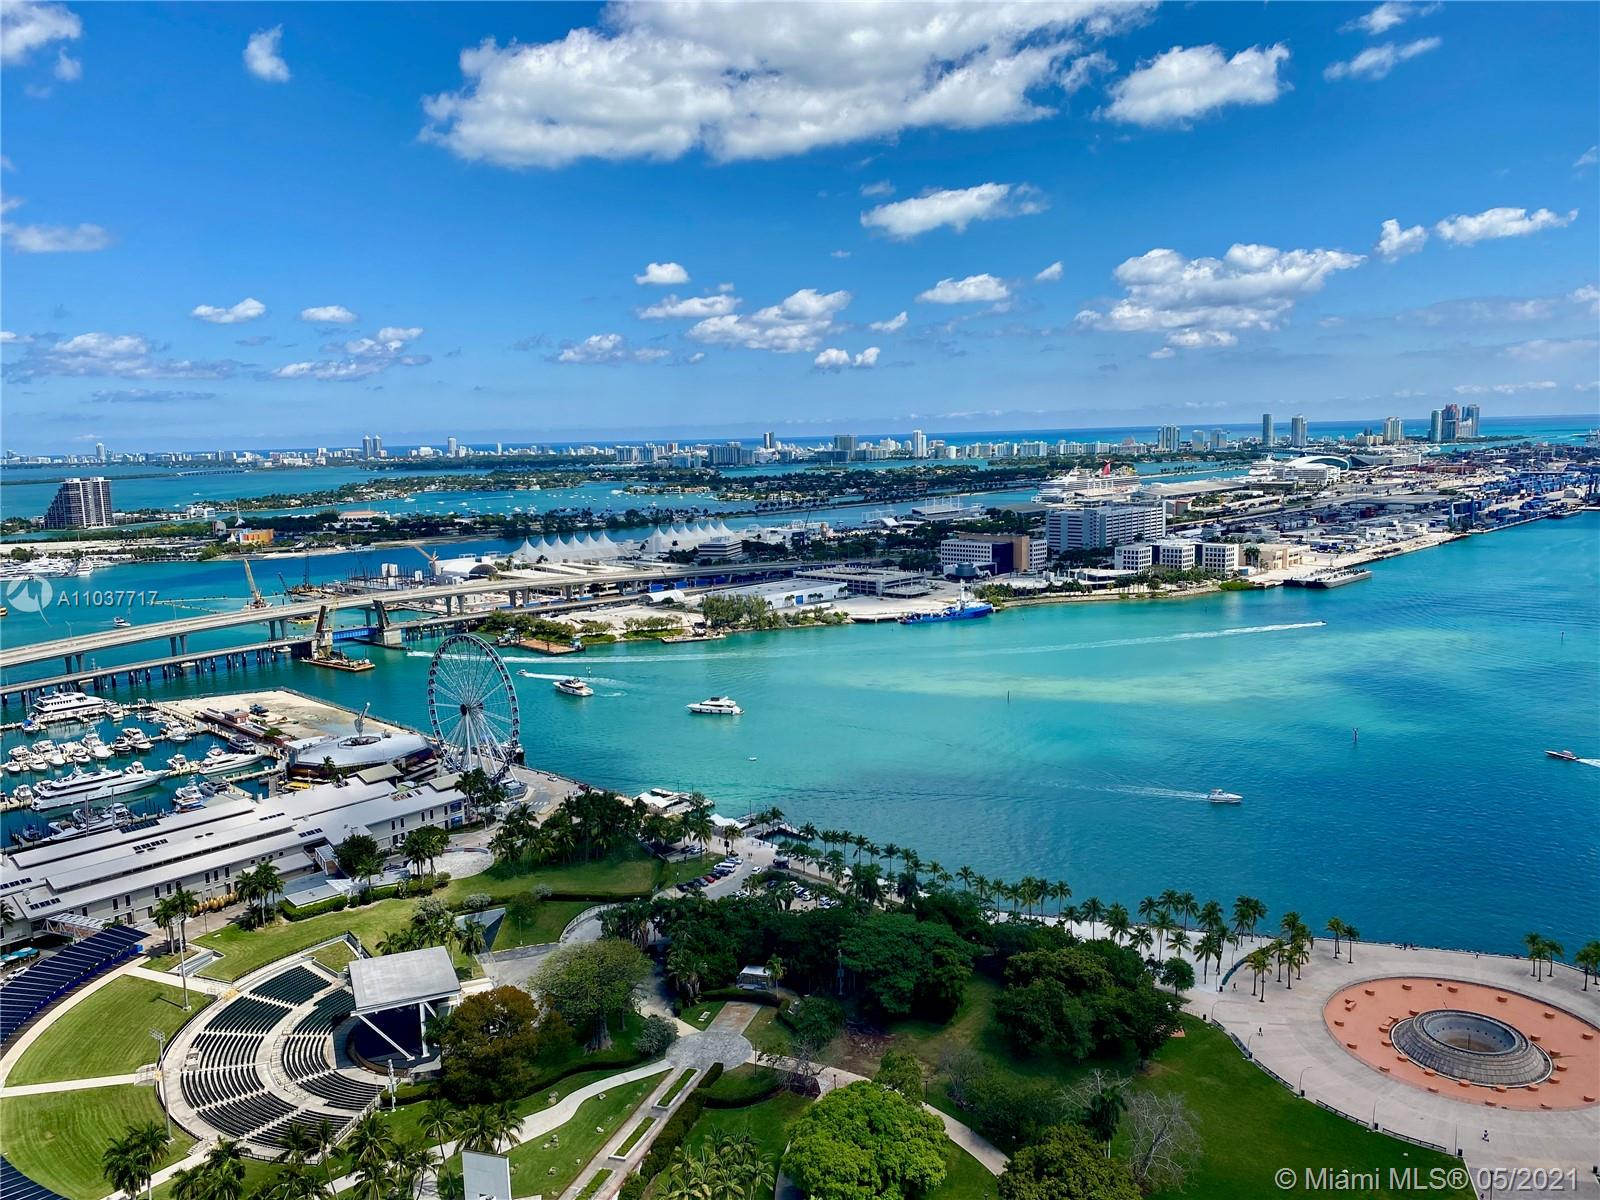 """LOCATION! Heart of city with a multimillion dollar VIEW!! EVERY ROOM and your FINISHED balcony unobstructed VIEWS bay, cruise ships, port & Bayside Fireworks! Pride of ownership in 2-2+DEN is evident! Meticulous detail built ins, his/her closets, flooring, doors, hinges, handles and trim! The contemporary soft colors reflect downtown lifestyle, all within steps of the secure entry. Walk to The Perez Art Museum, AAA arena, Bayside Park and Marketplace, Dine & shop WholeFoods are only part of location! 50 Biscayne has it all, the 3 story lobby with lush greenery and soothing water feature, the 10th floor Oasis features infinity edge pool, cabana, state of art gym. The revitalization of """"FLAGER STREET"""" will be the BEST of Miami's New Downtown! FURNITURE Negotiable! Den unit is included!"""